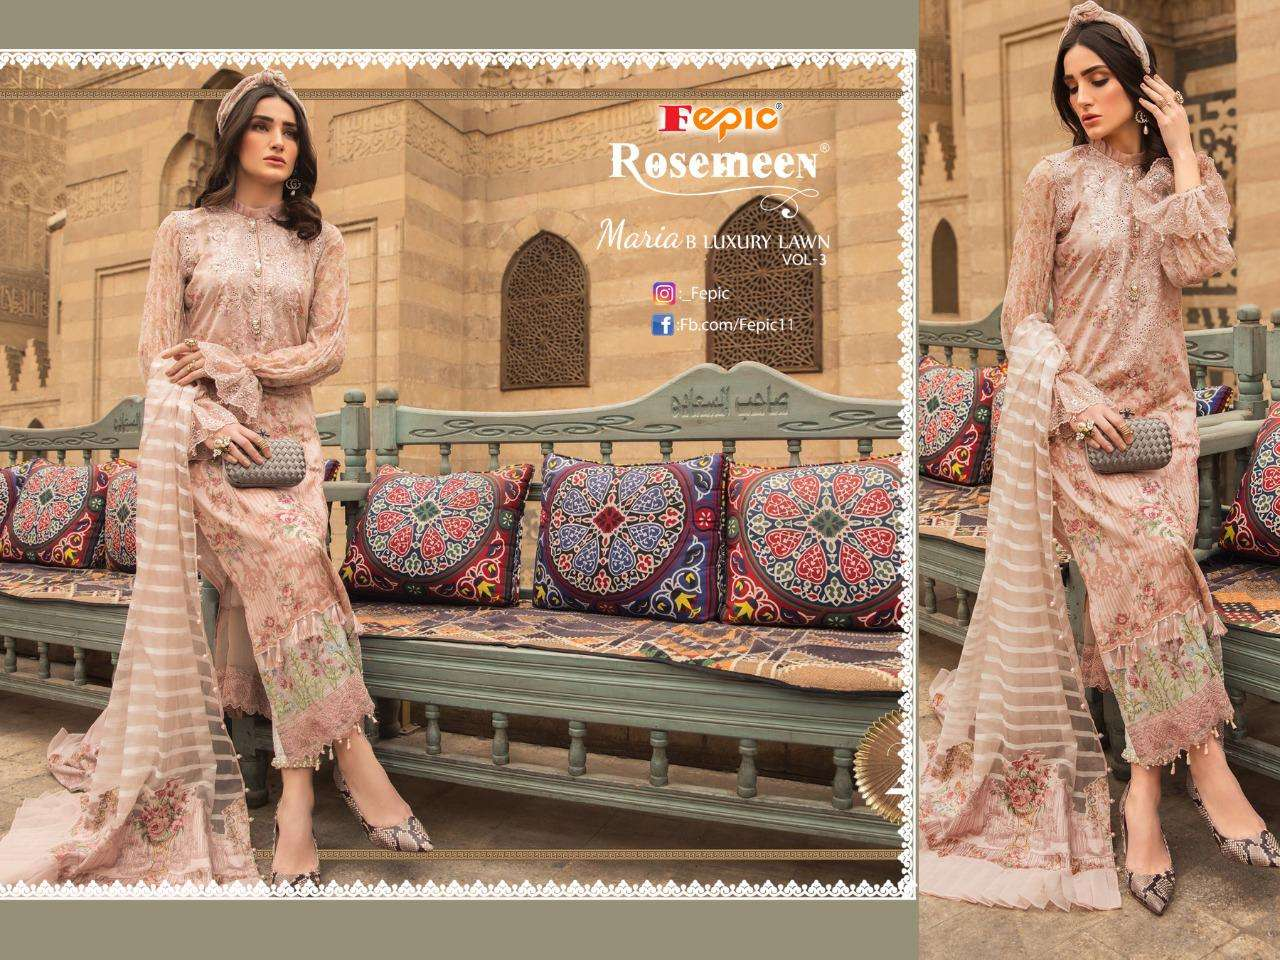 Fepic Rosemeen Maria B Luxury Lawn Vol 3 Cotton With Embroidery Patch work Pakistani Suits Collection